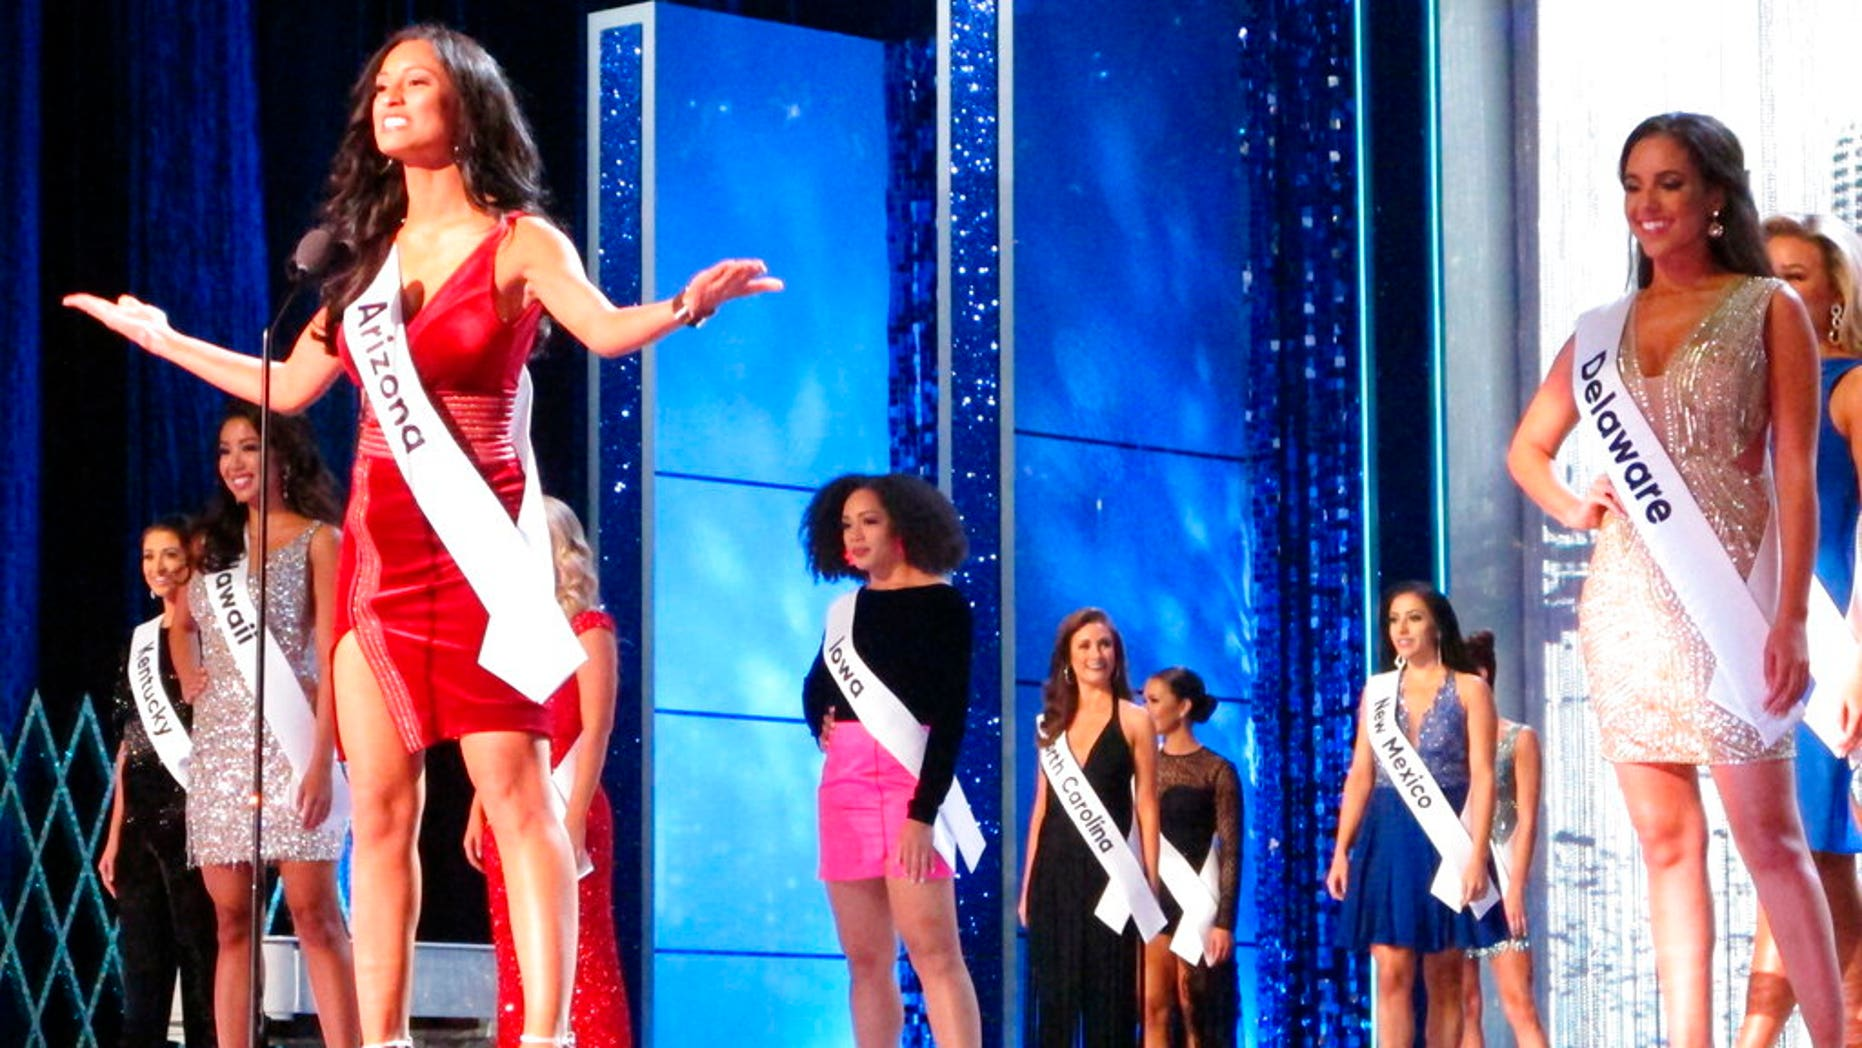 Miss Arizona Isabel Ticlo introduces herself at the start of the third and finalnight of preliminary competition at the Miss America competition in Atlantic City, N.J., earlier this year. (Associated Press)